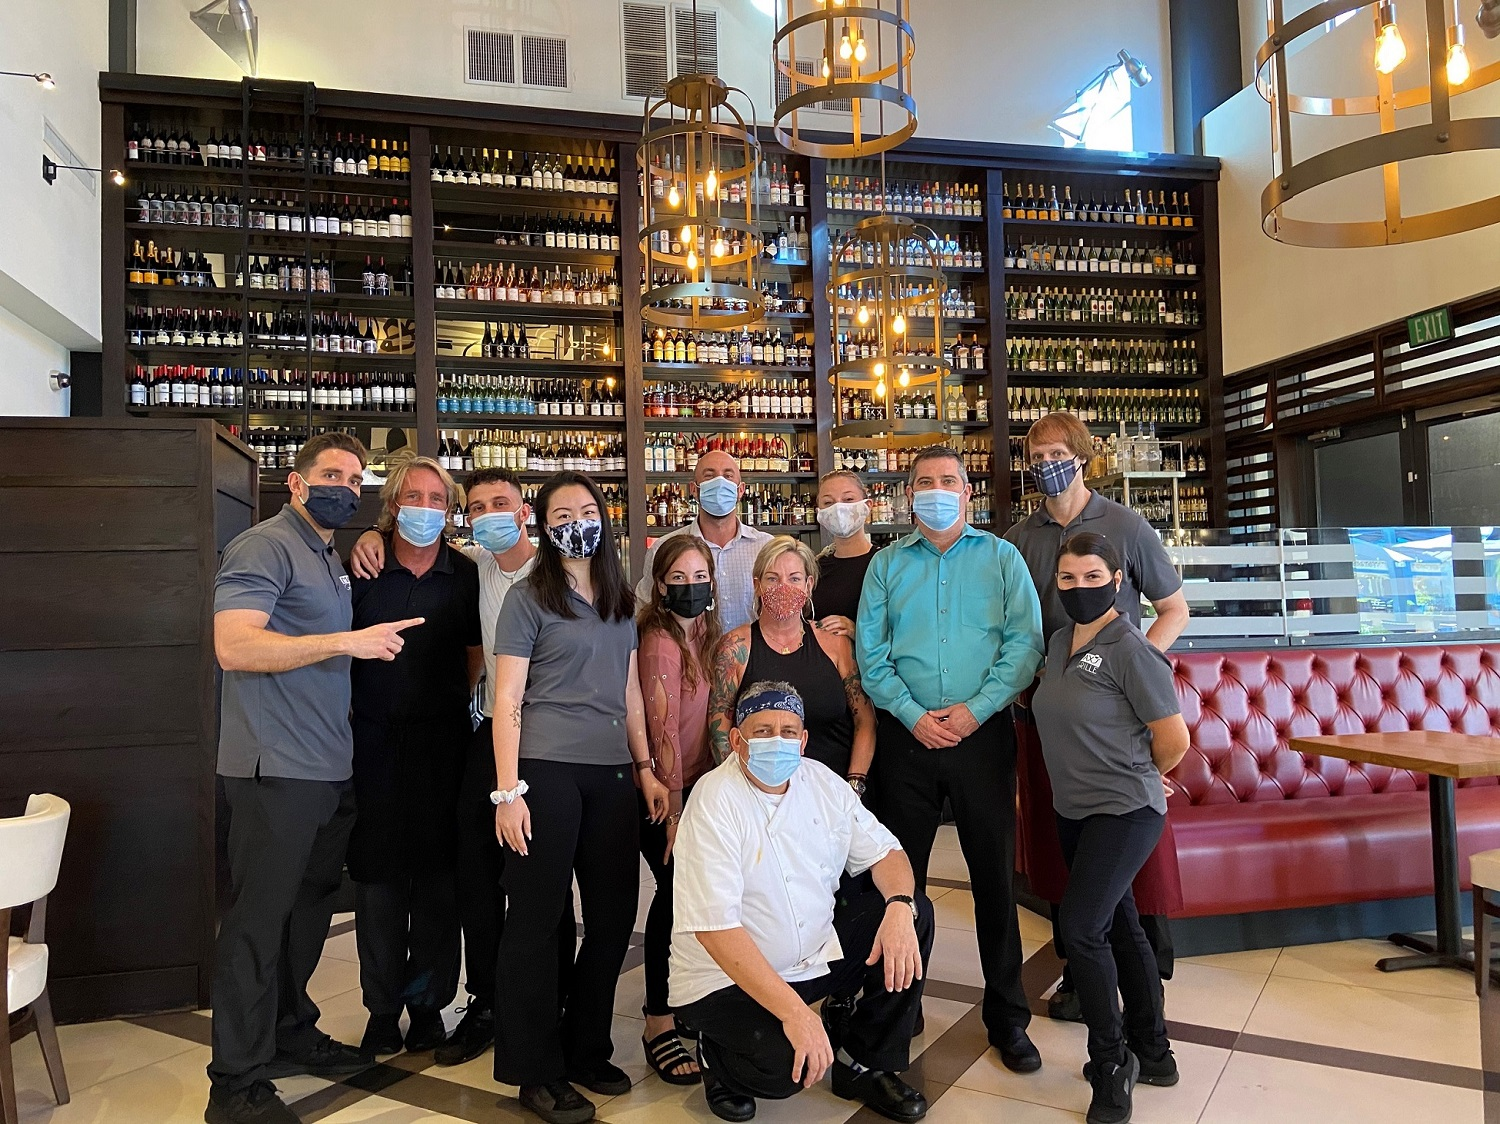 RAPOPORTS RESTAURANT GROUP NAMED A 2021 TOP WORKPLACES USA AWARD WINNER BY ENERGAGE